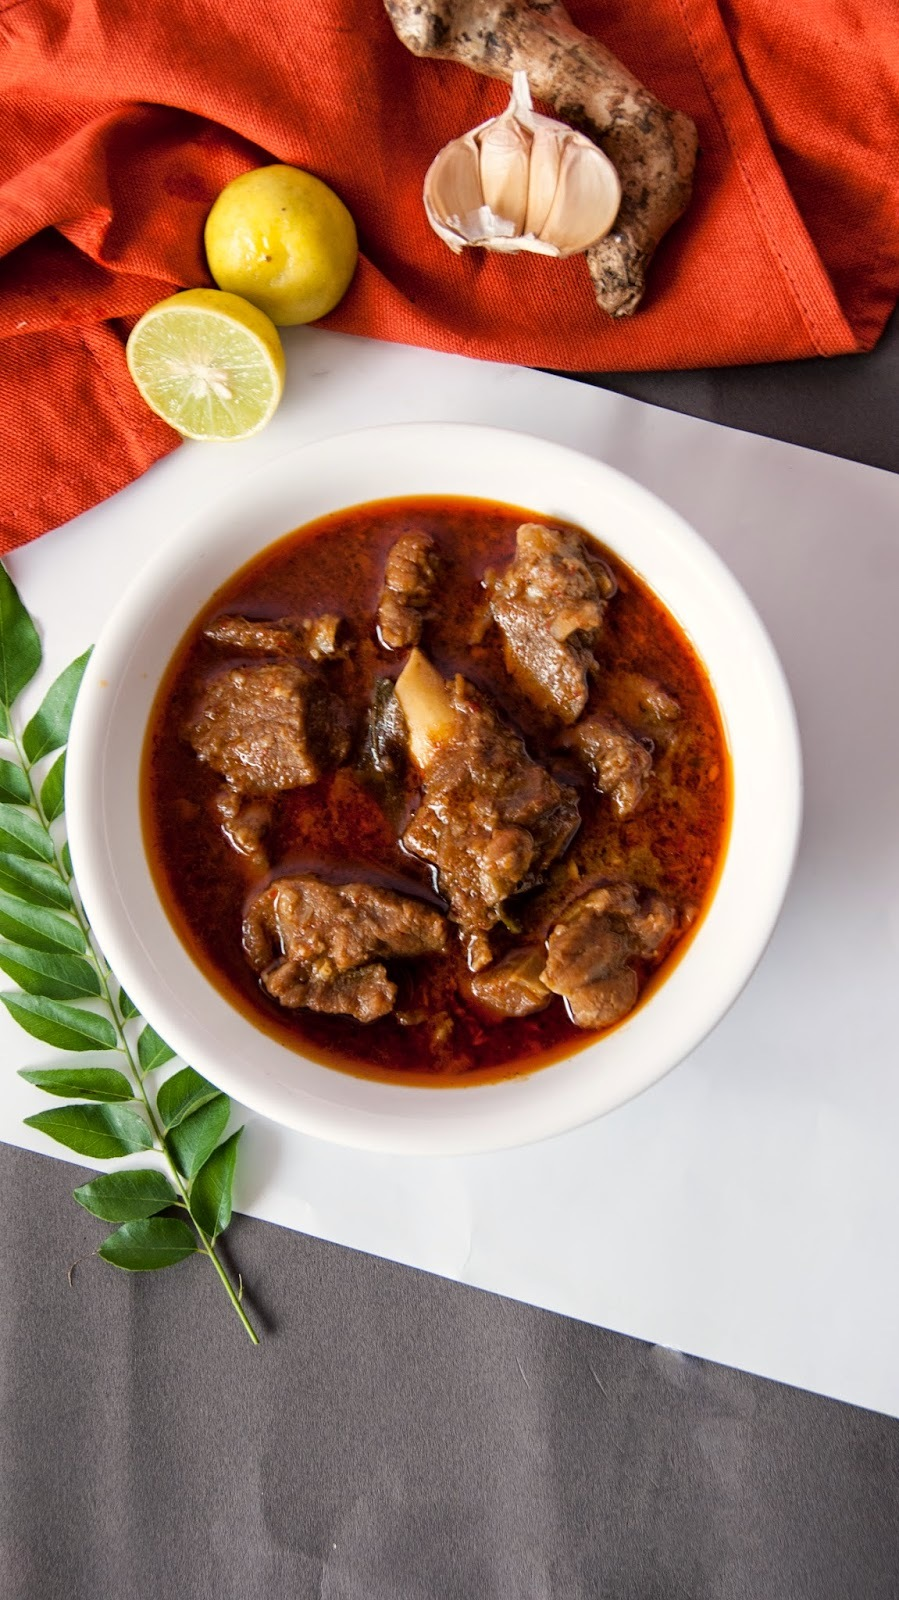 Authentic Chettinadu Mutton Gravy / Chettinadu Mutton Kuzhambu